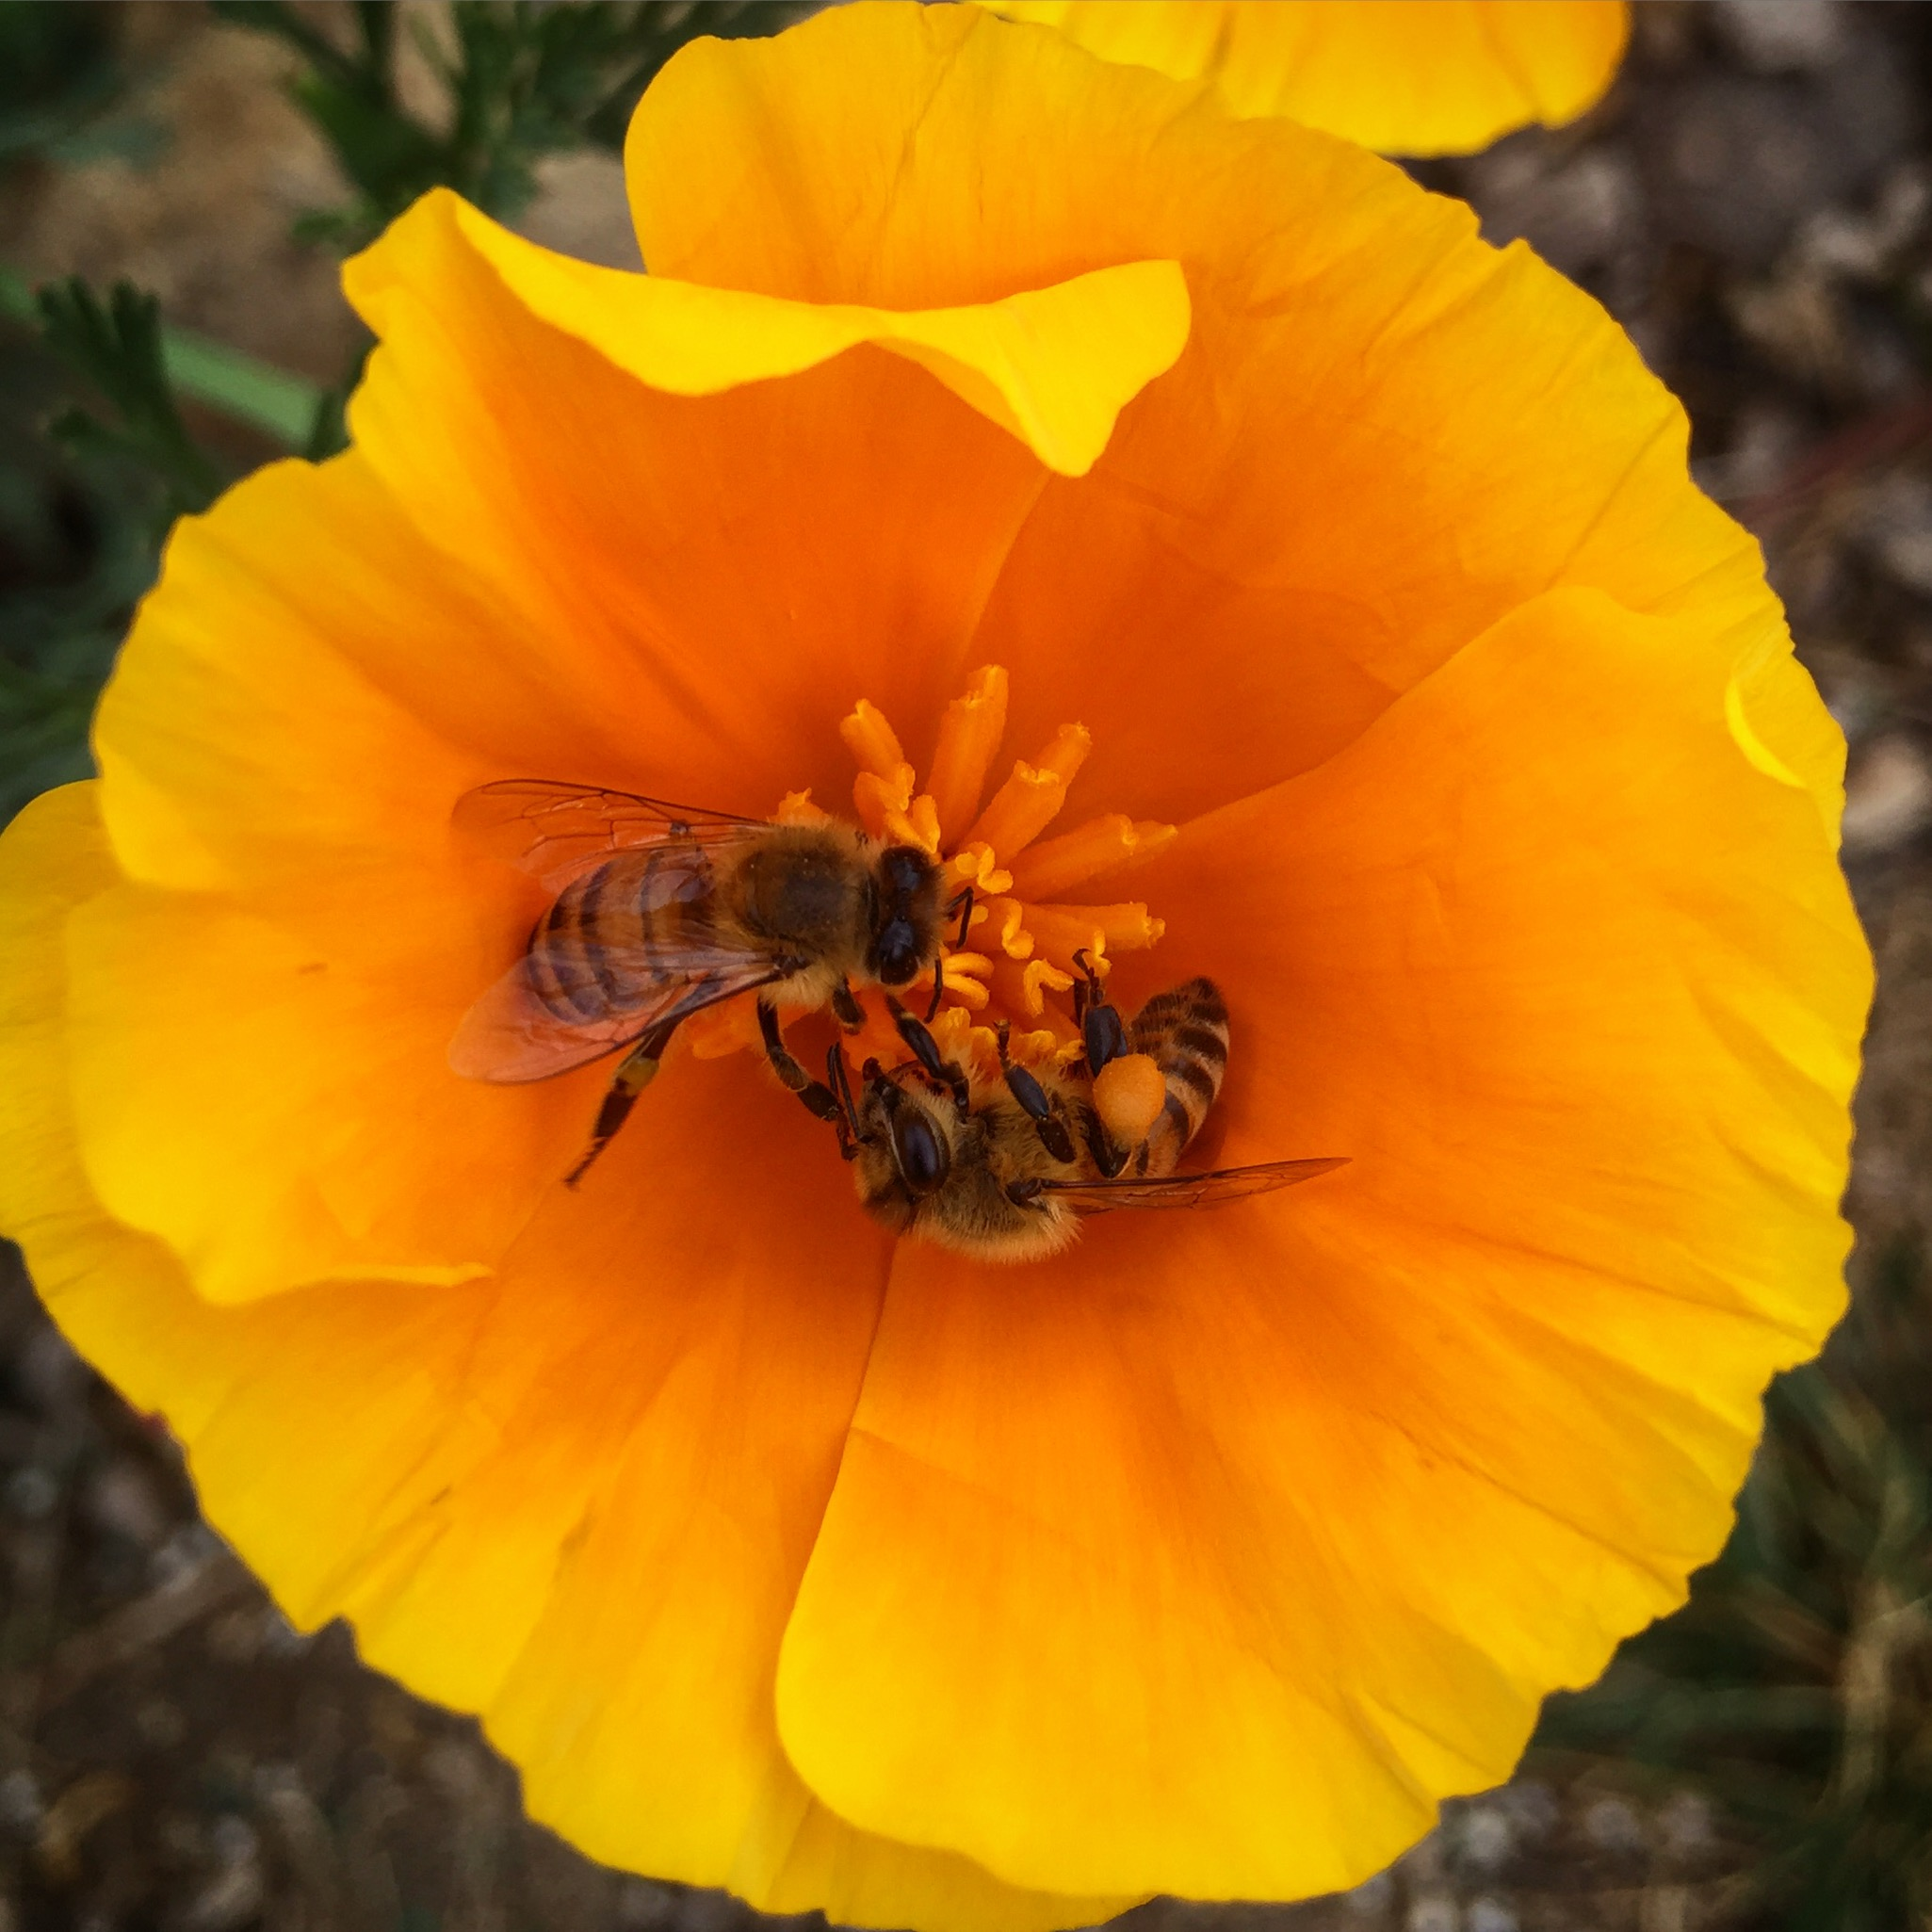 Honeybee in California Poppy